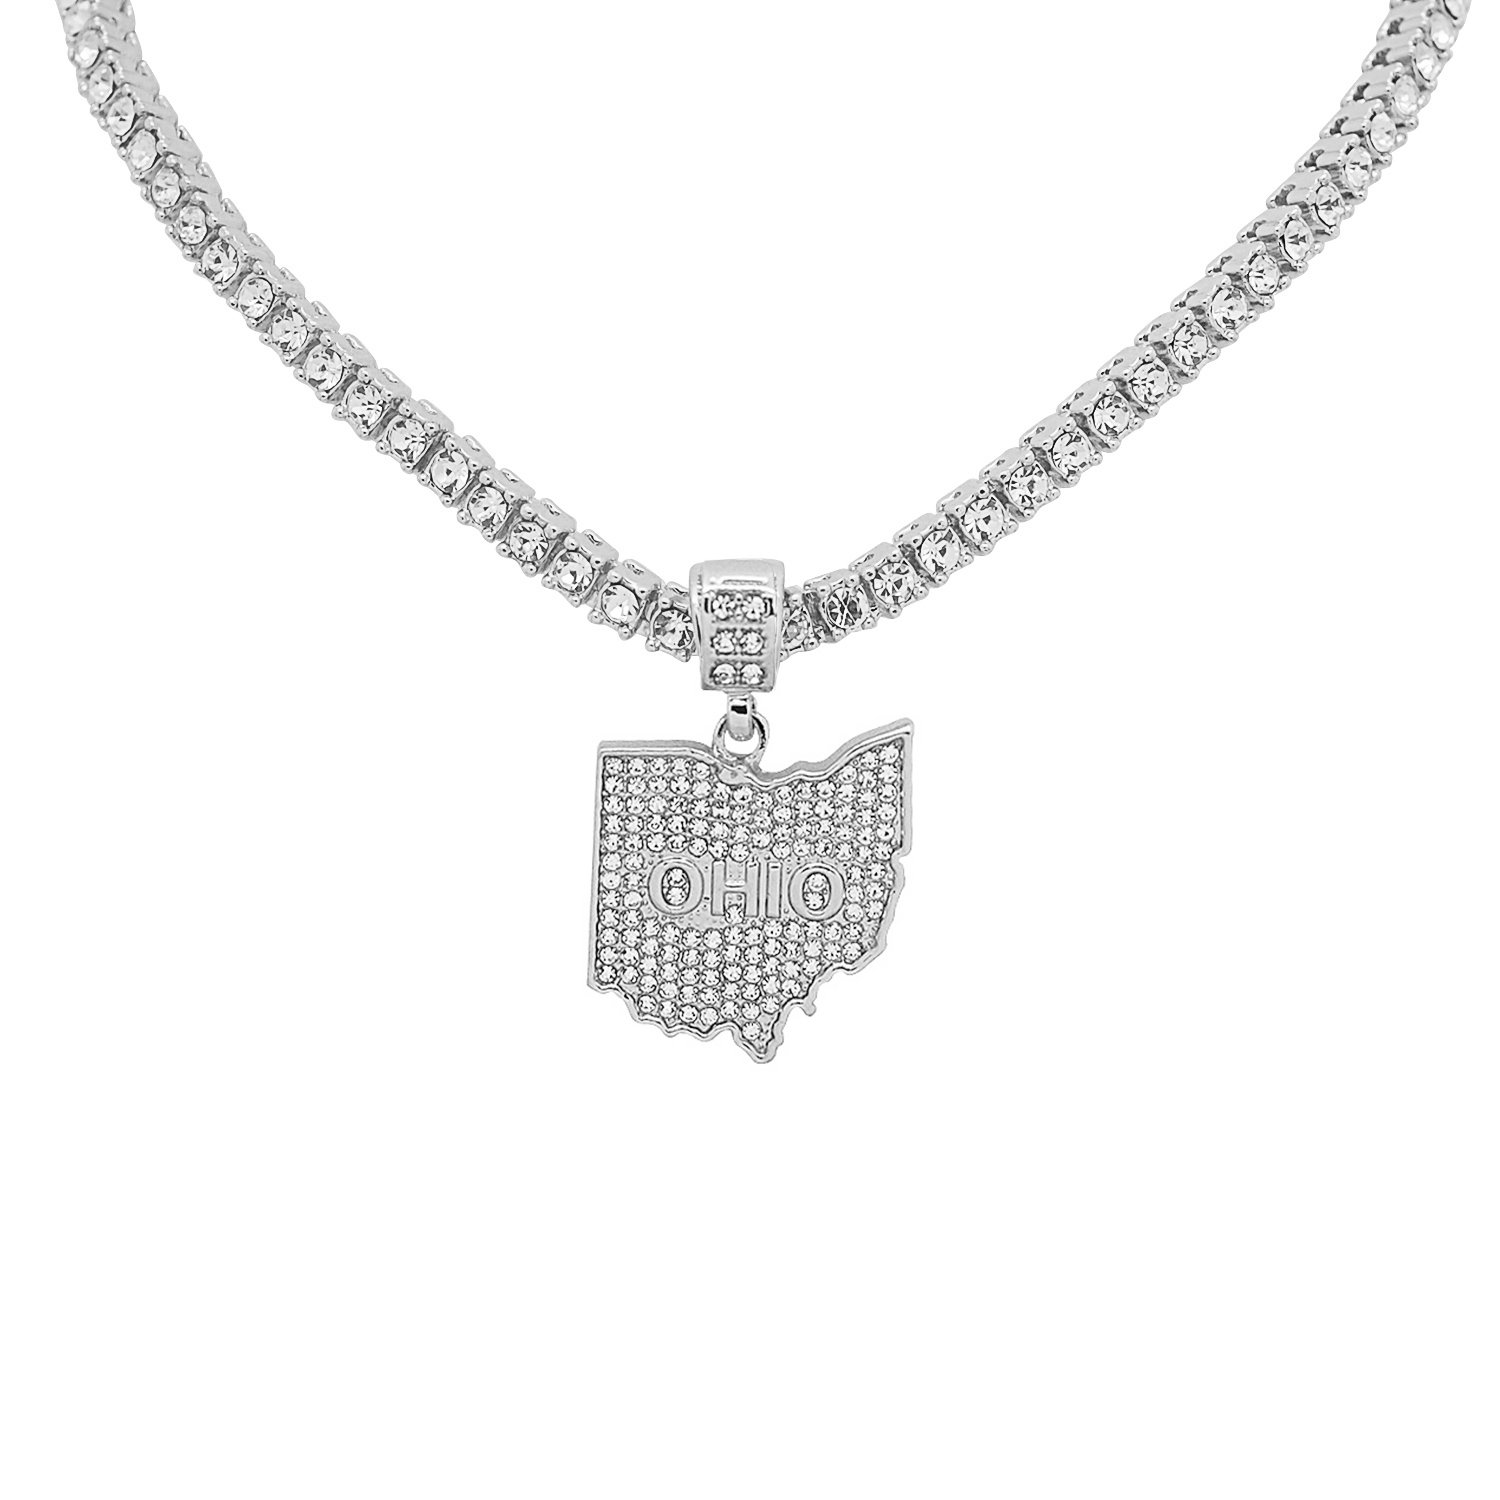 White Gold-Tone Hip Hop Bling Simulated Crystal The Buckeye State Ohio Map Pendant with 24 Tennis Chain and 24 Rope Chain